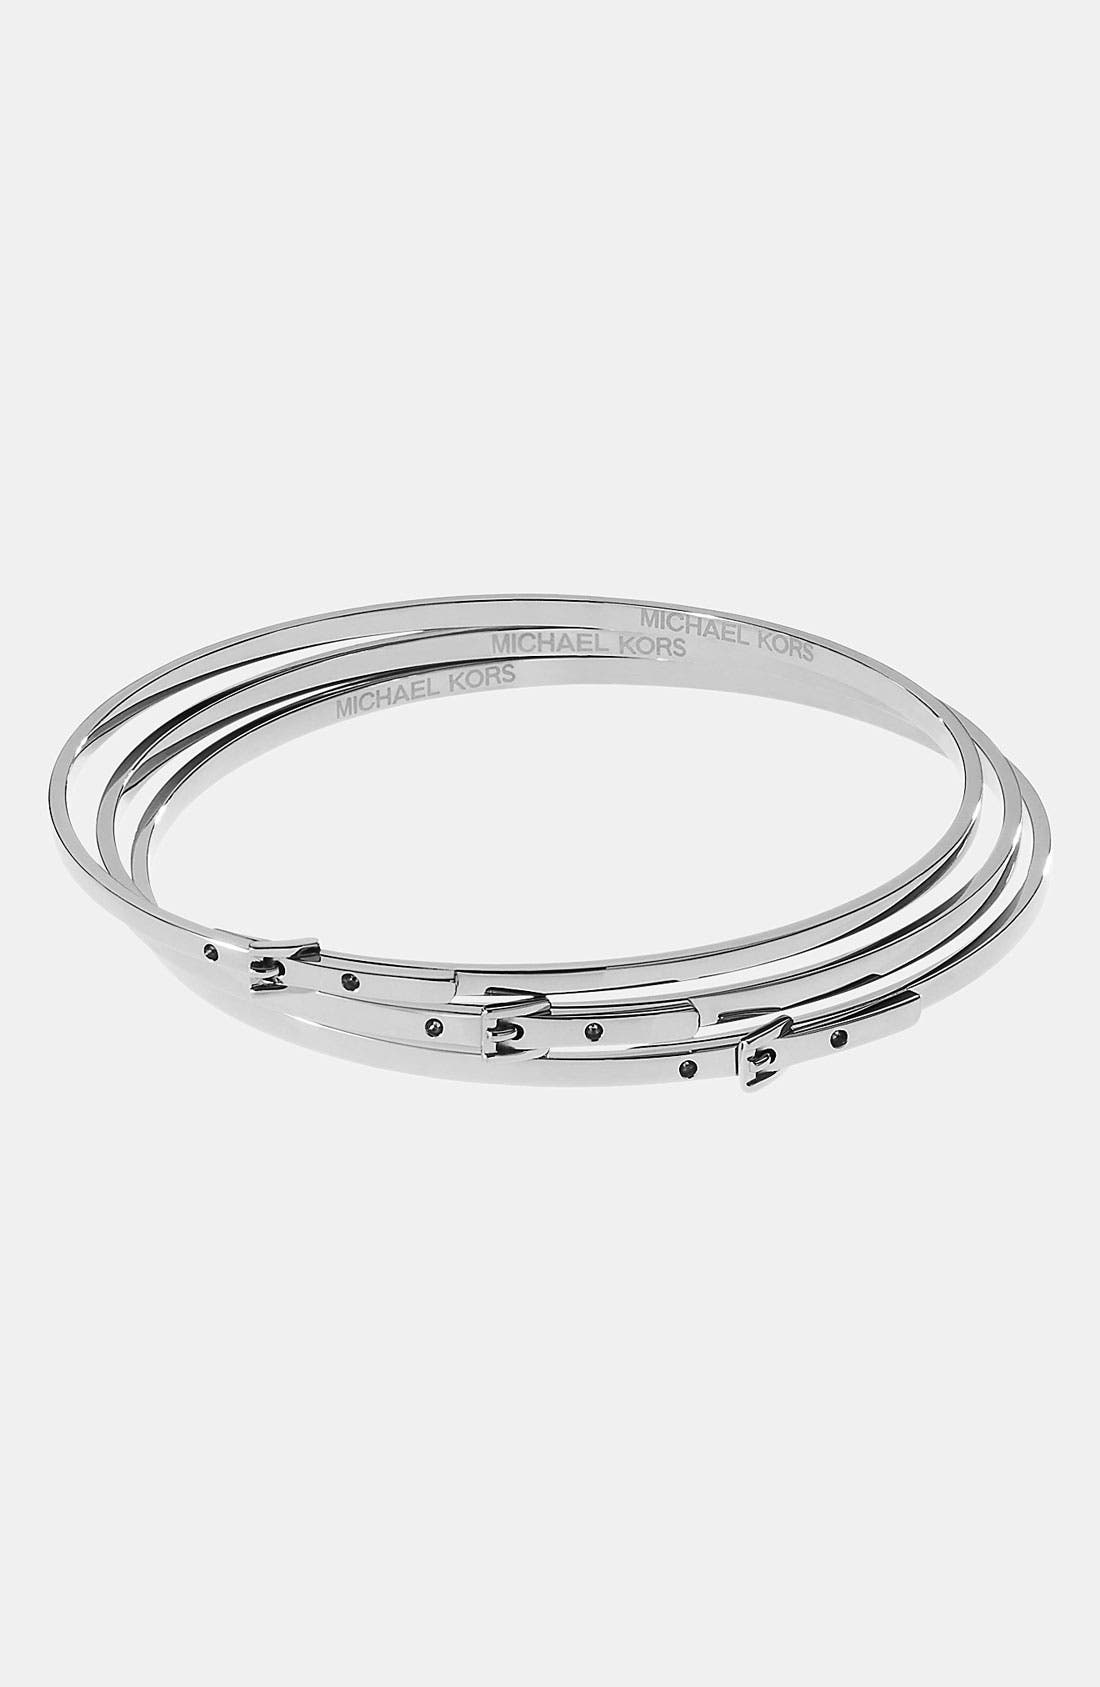 Main Image - Michael Kors Buckle Bangles (Set of 3)